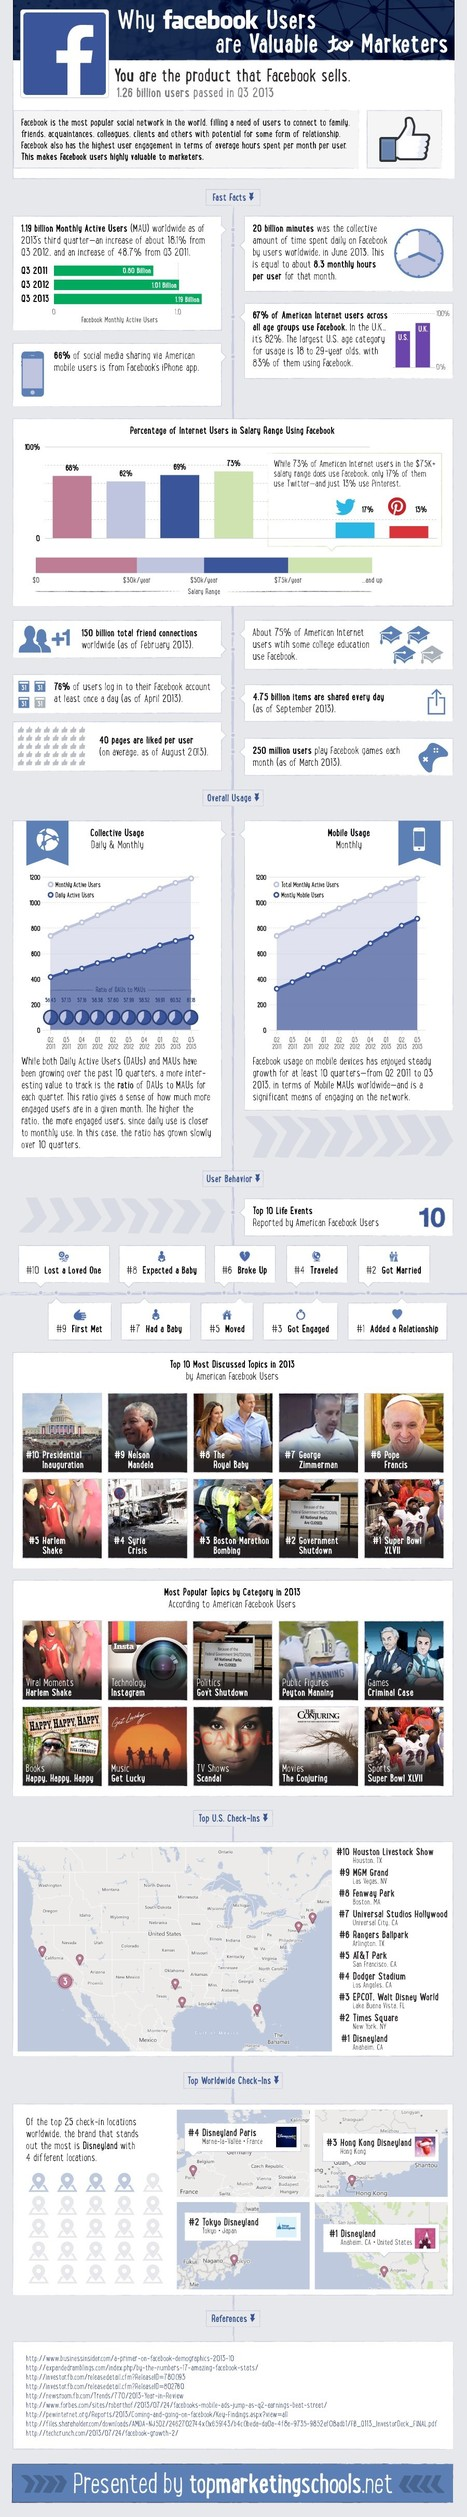 Why Facebook User Data Matters to Advertisers?   Tips And Tricks For Pc, Mobile, Blogging, SEO, Earning online, etc...   Scoop.it